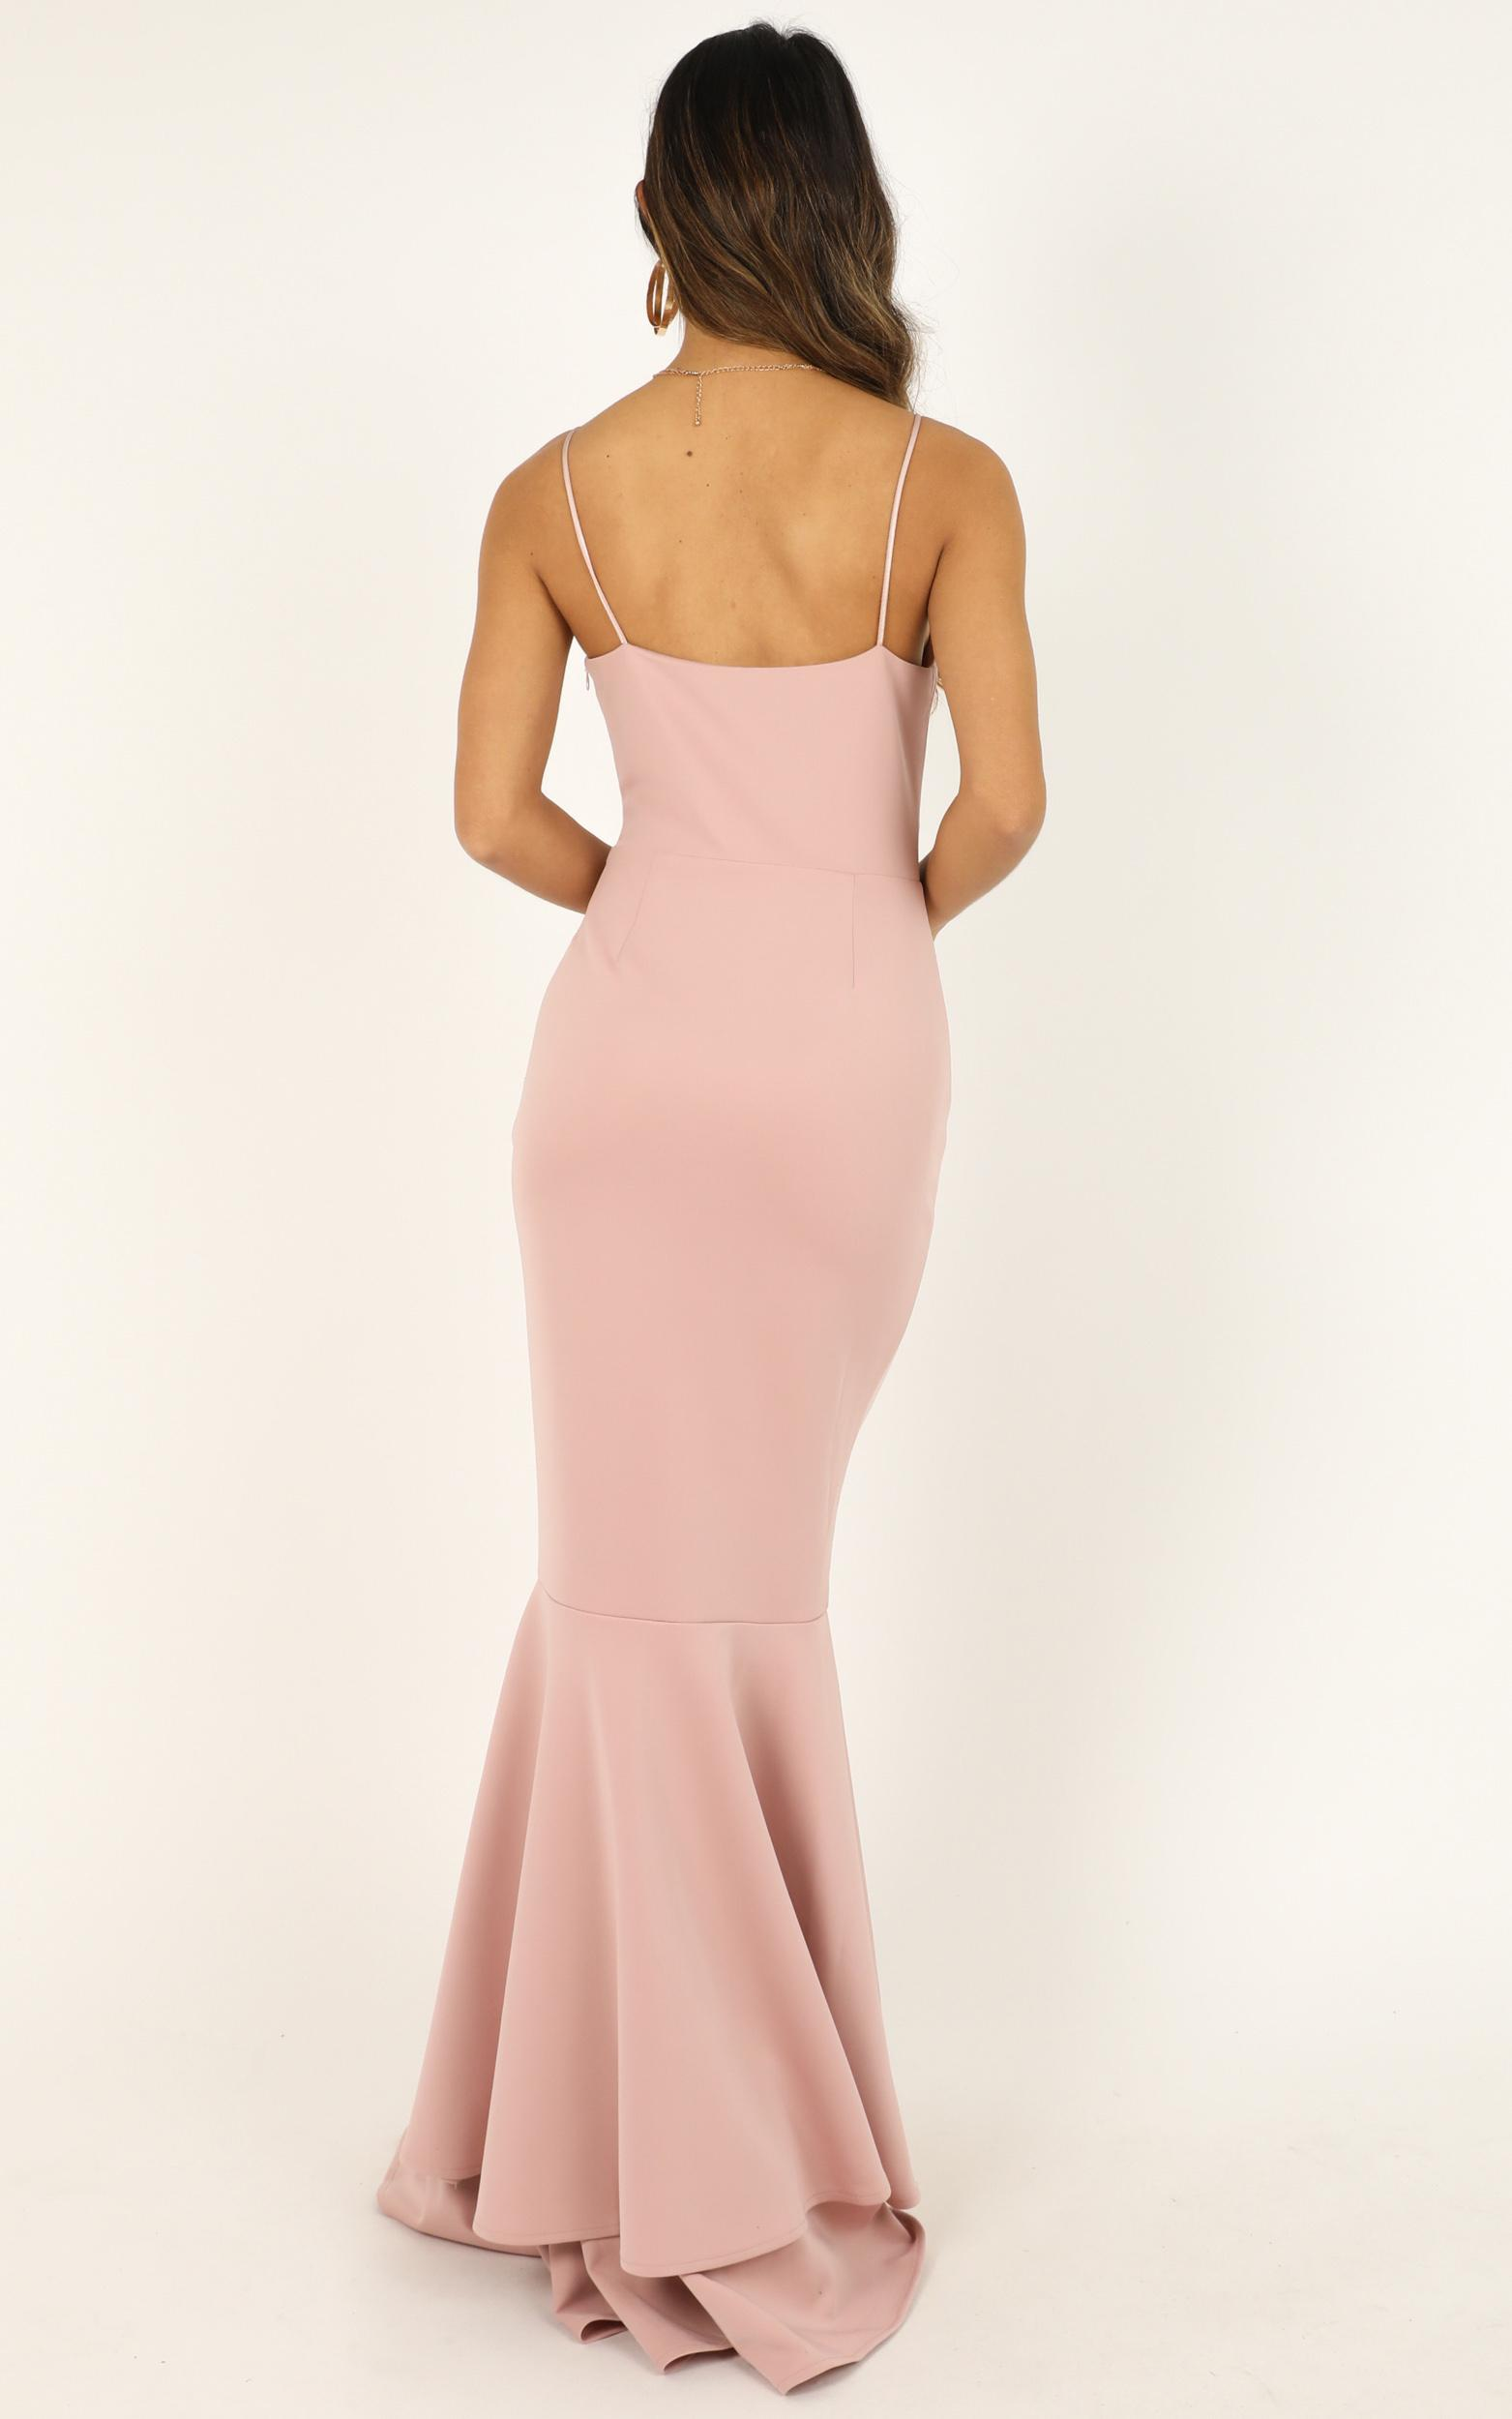 Way I Feel For You Dress in blush - 20 (XXXXL), Blush, hi-res image number null